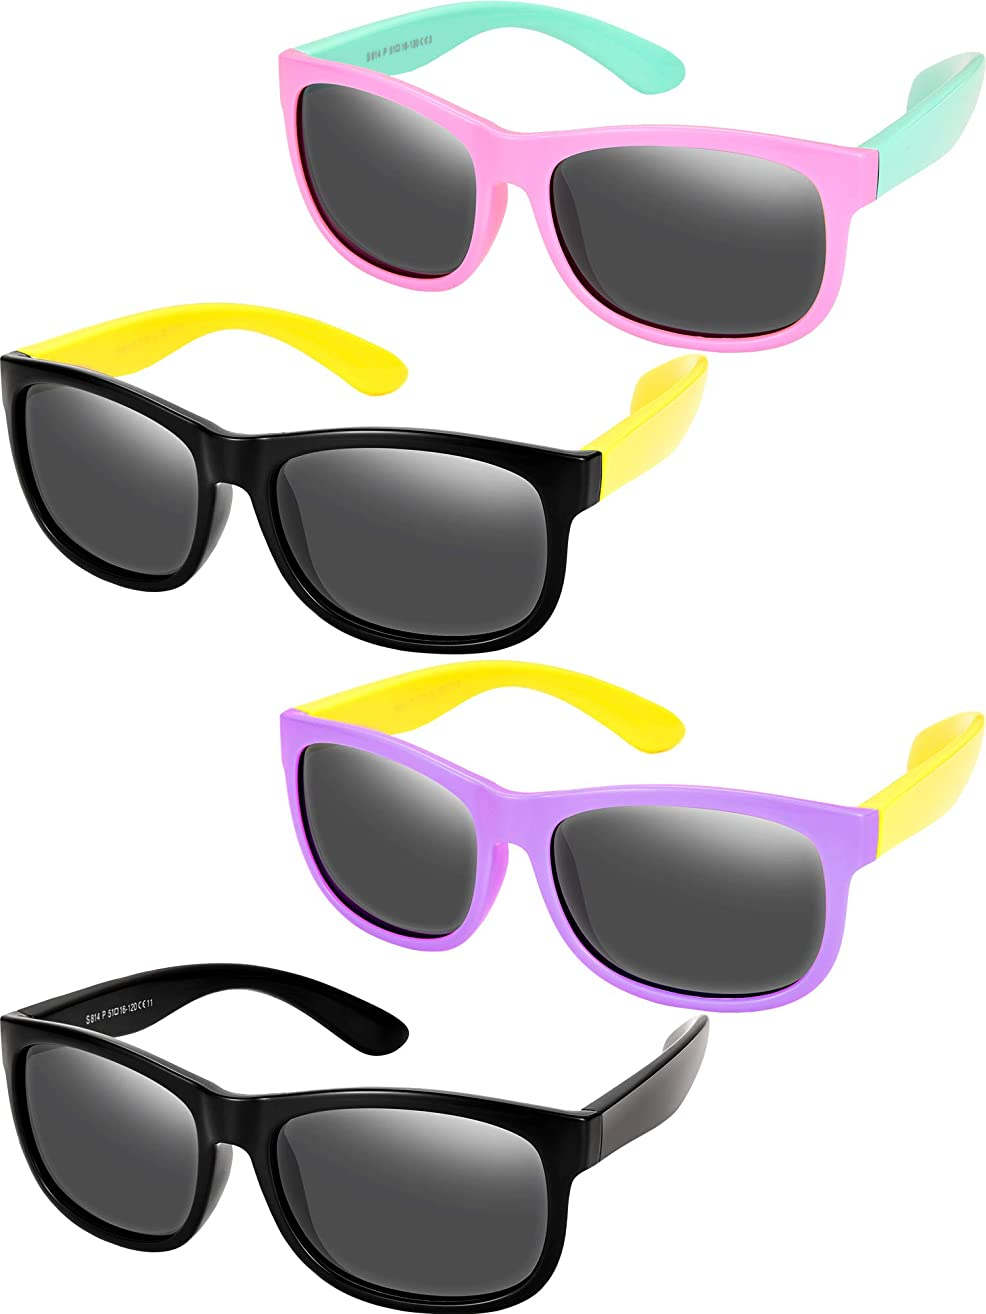 4 Pieces Toddler Sunglasses Children Sunglasses Rubber Flexible Kids Sunglasses, Age 3-10